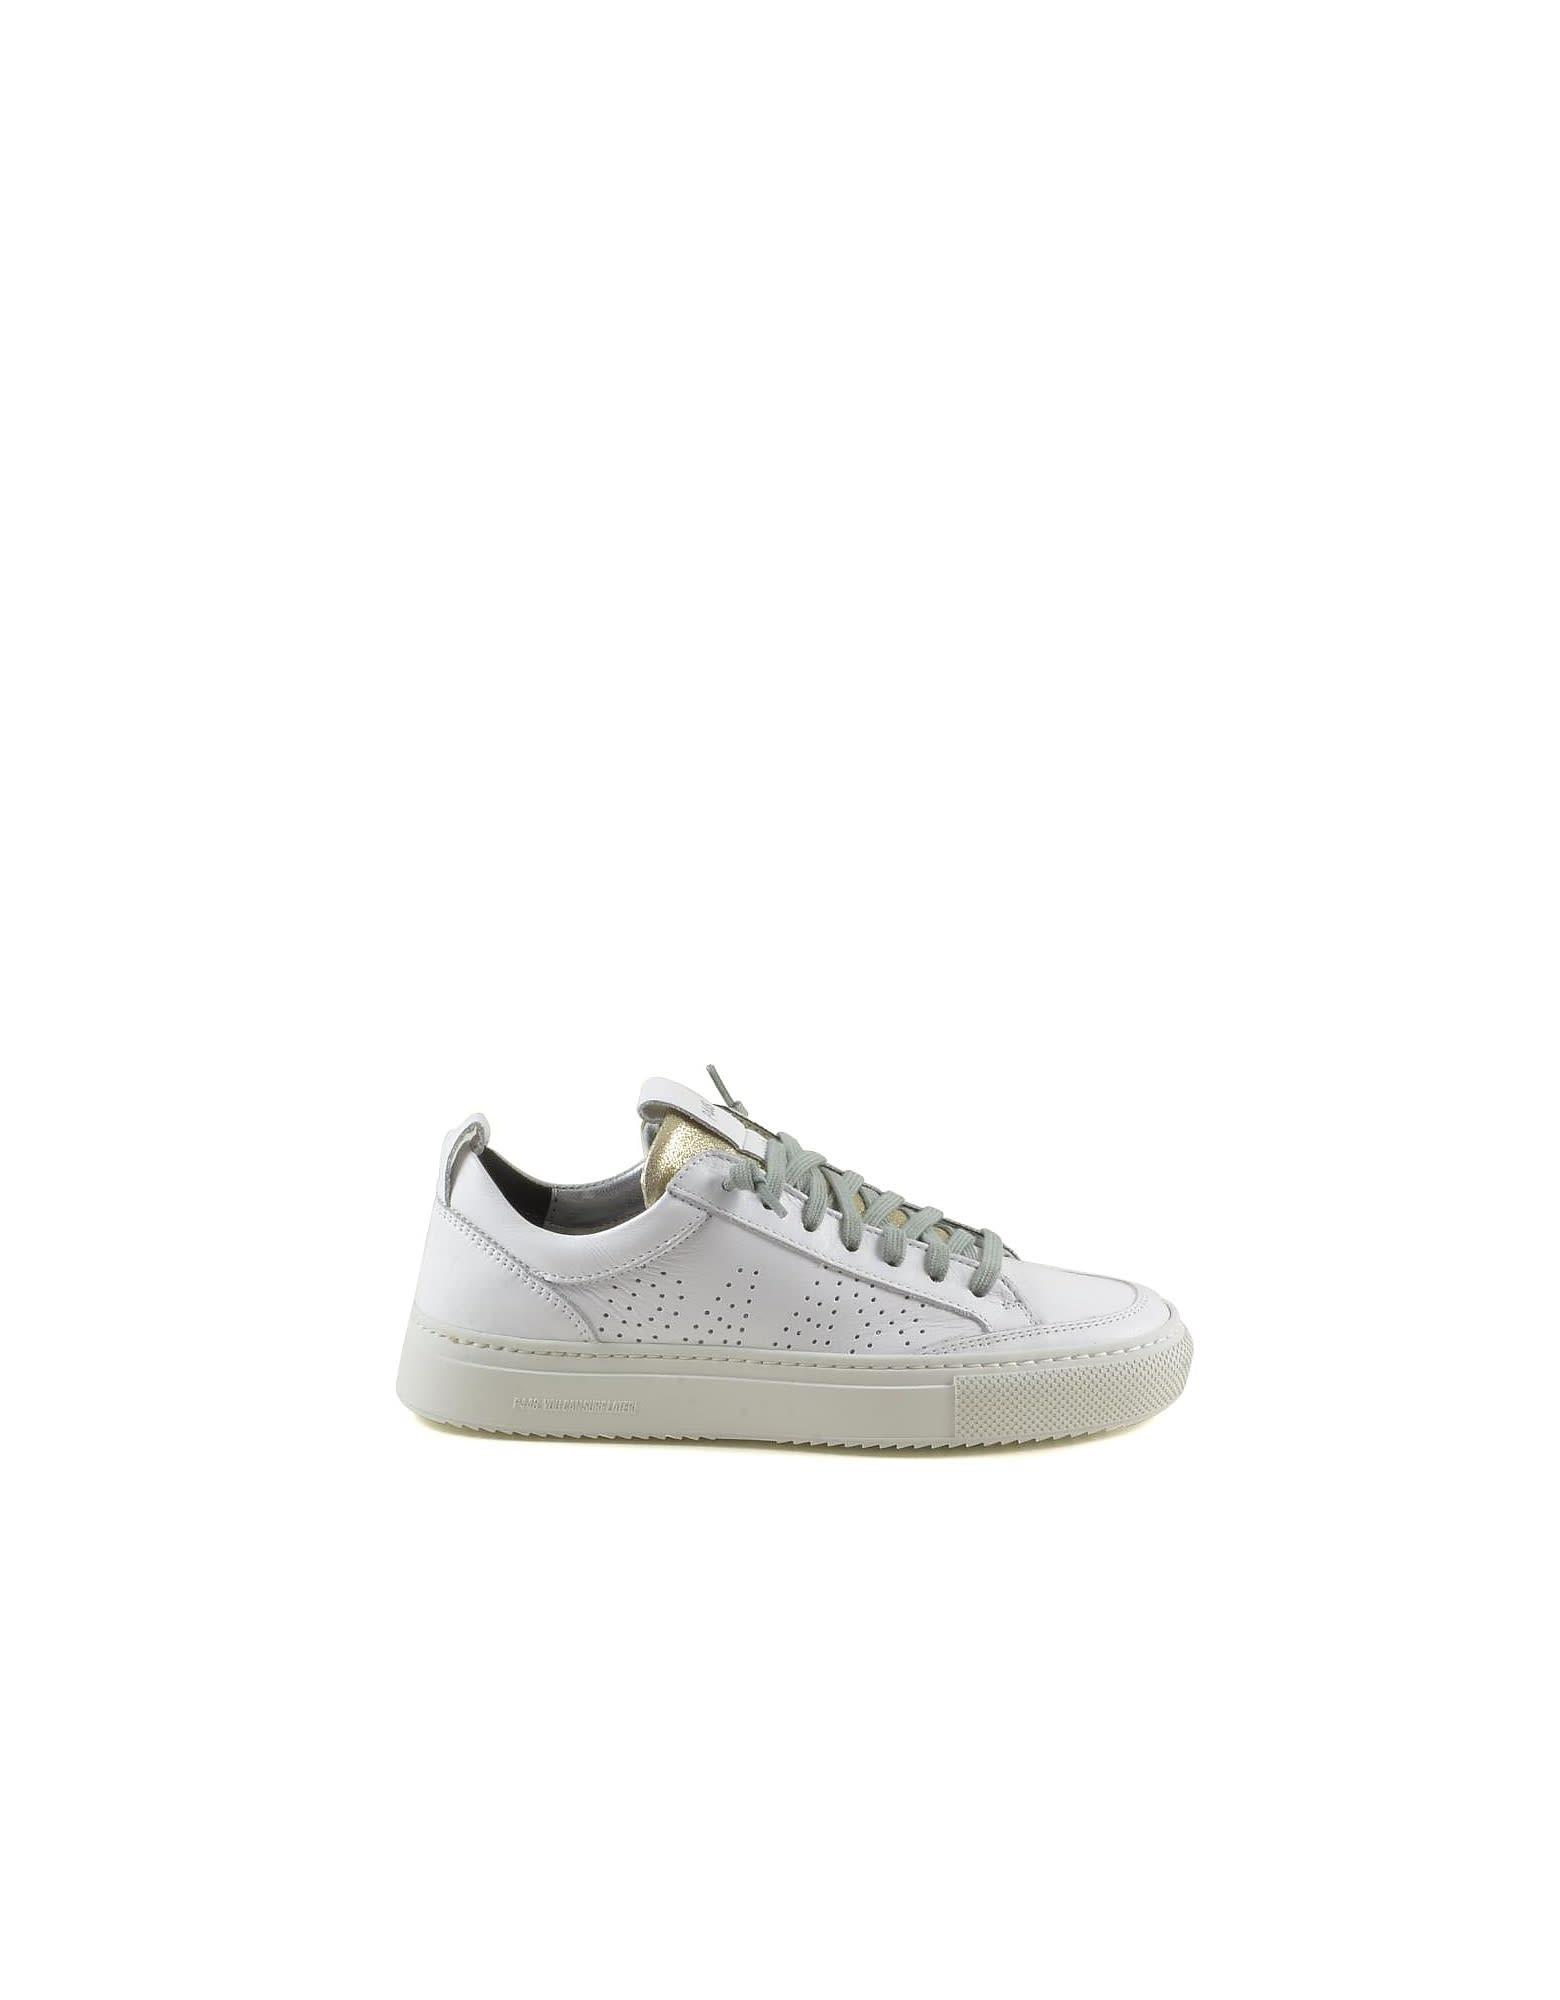 P448 WHITE/PLATINUM LEATHER WOMENS SNEAKERS